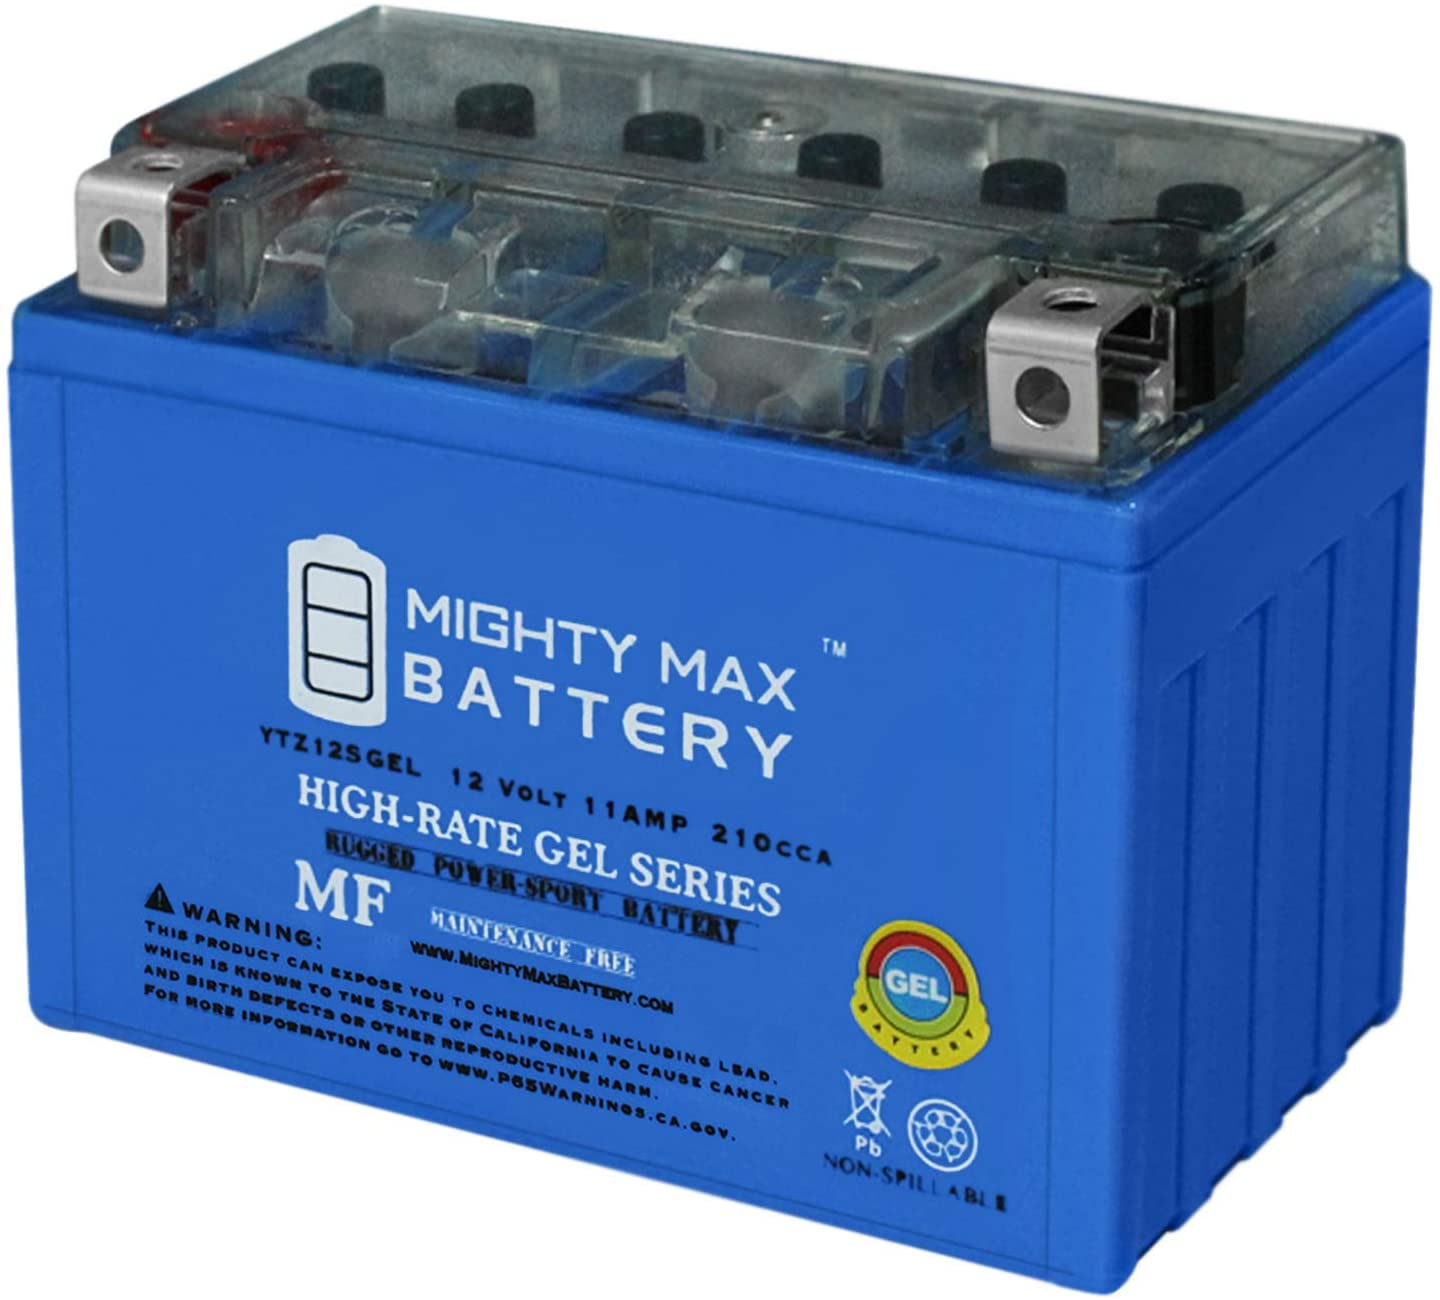 Mighty Max Battery 12V 11AH 210CCA Gel Battery for Honda 700 NC700X 2012-2014 Brand Product